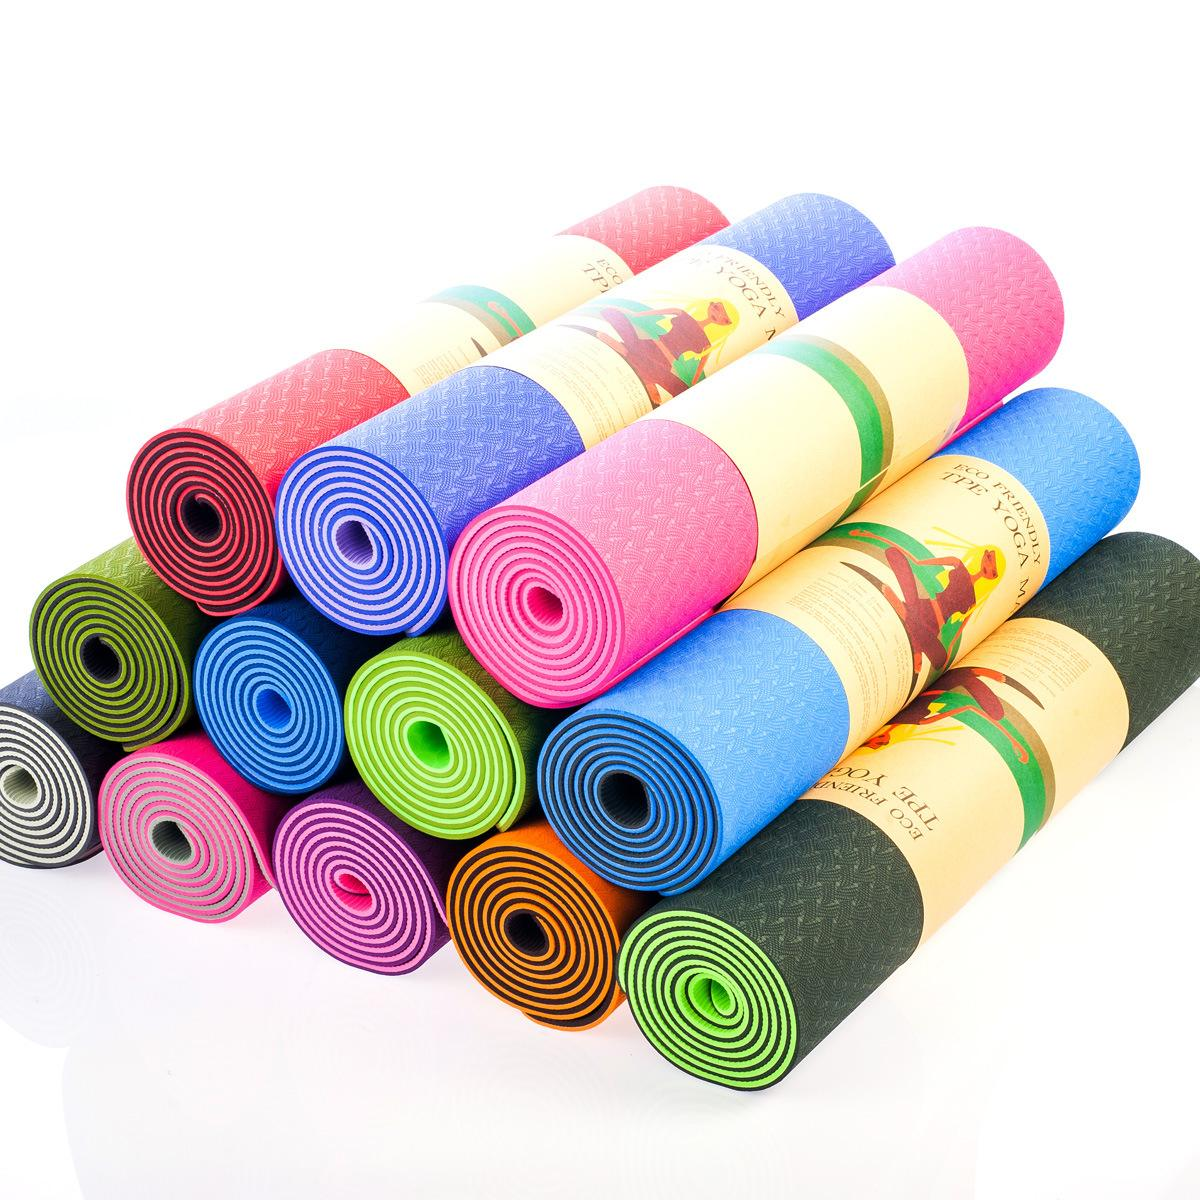 1-10mm Custom Rubber, TPE Dubbele Laag Dropship Anti-slip Yoga Mat met band